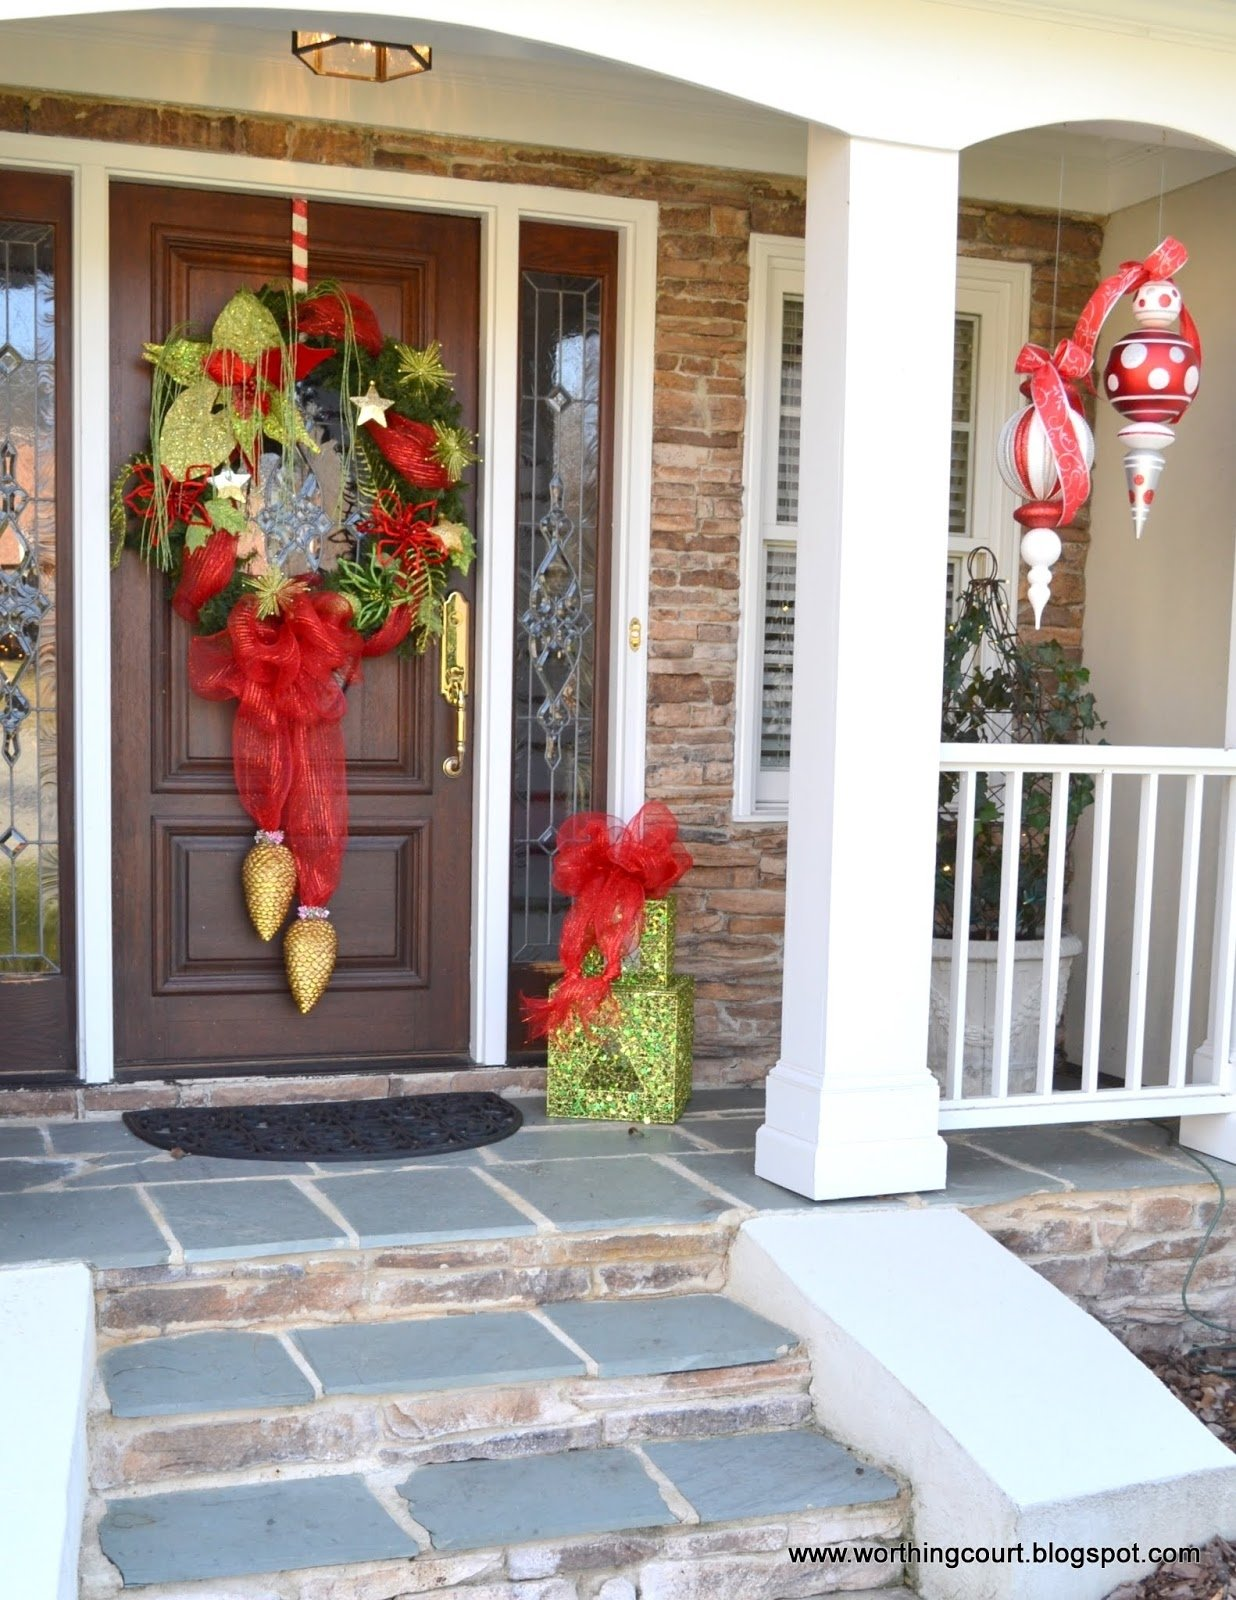 10 Lovable Christmas Front Porch Decorating Ideas best perfect christmas decorations for front porch latest decorating 1 2020